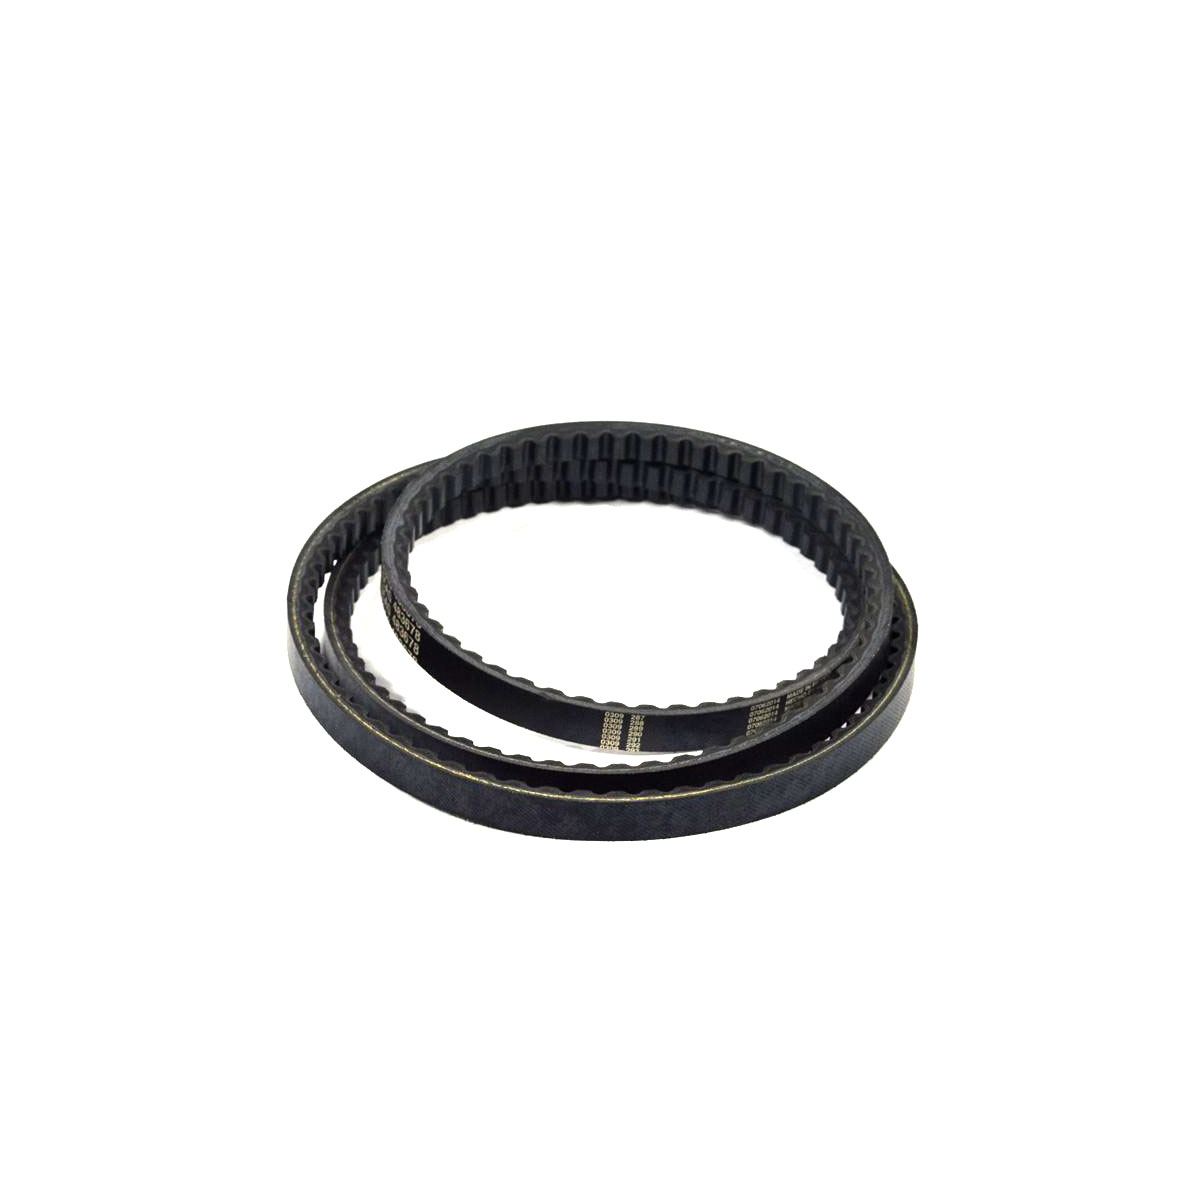 Scag Pump Drive Belt STT 483678